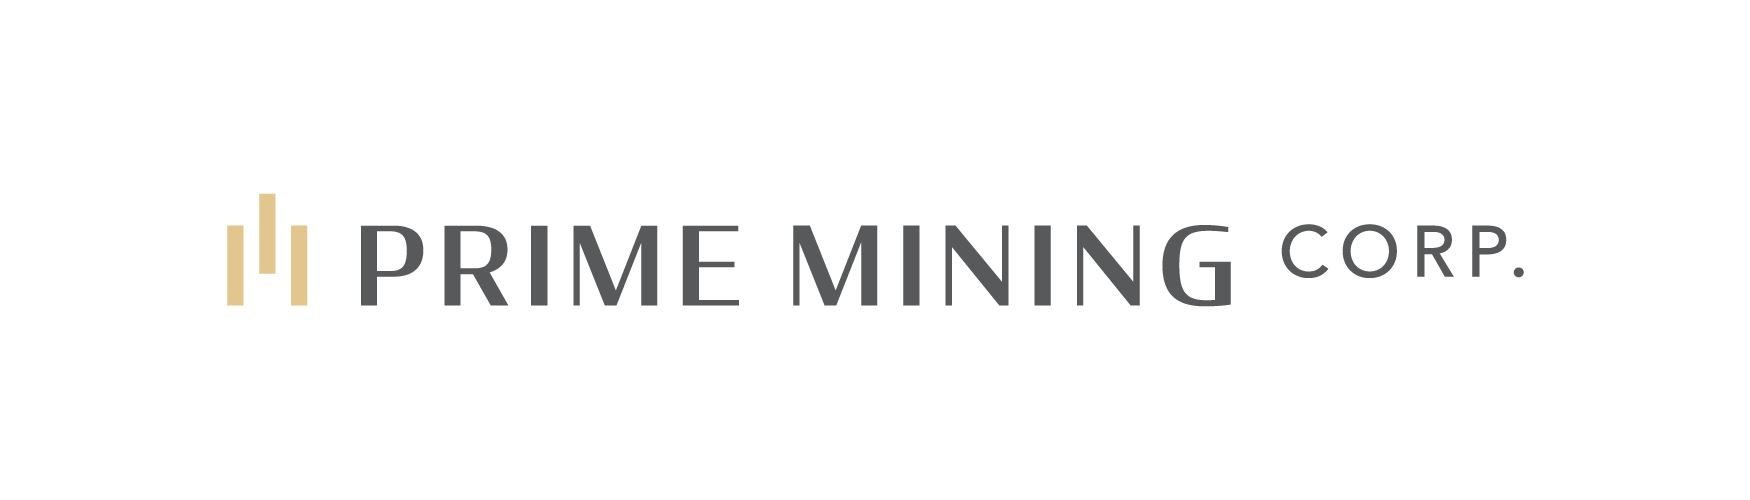 Prime Mining Announces Measured and Indicated In-Pit Oxide Mineral Resource of 19.8 Million Tonnes Containing 833,000 Gold Equivalent Ounces at 1